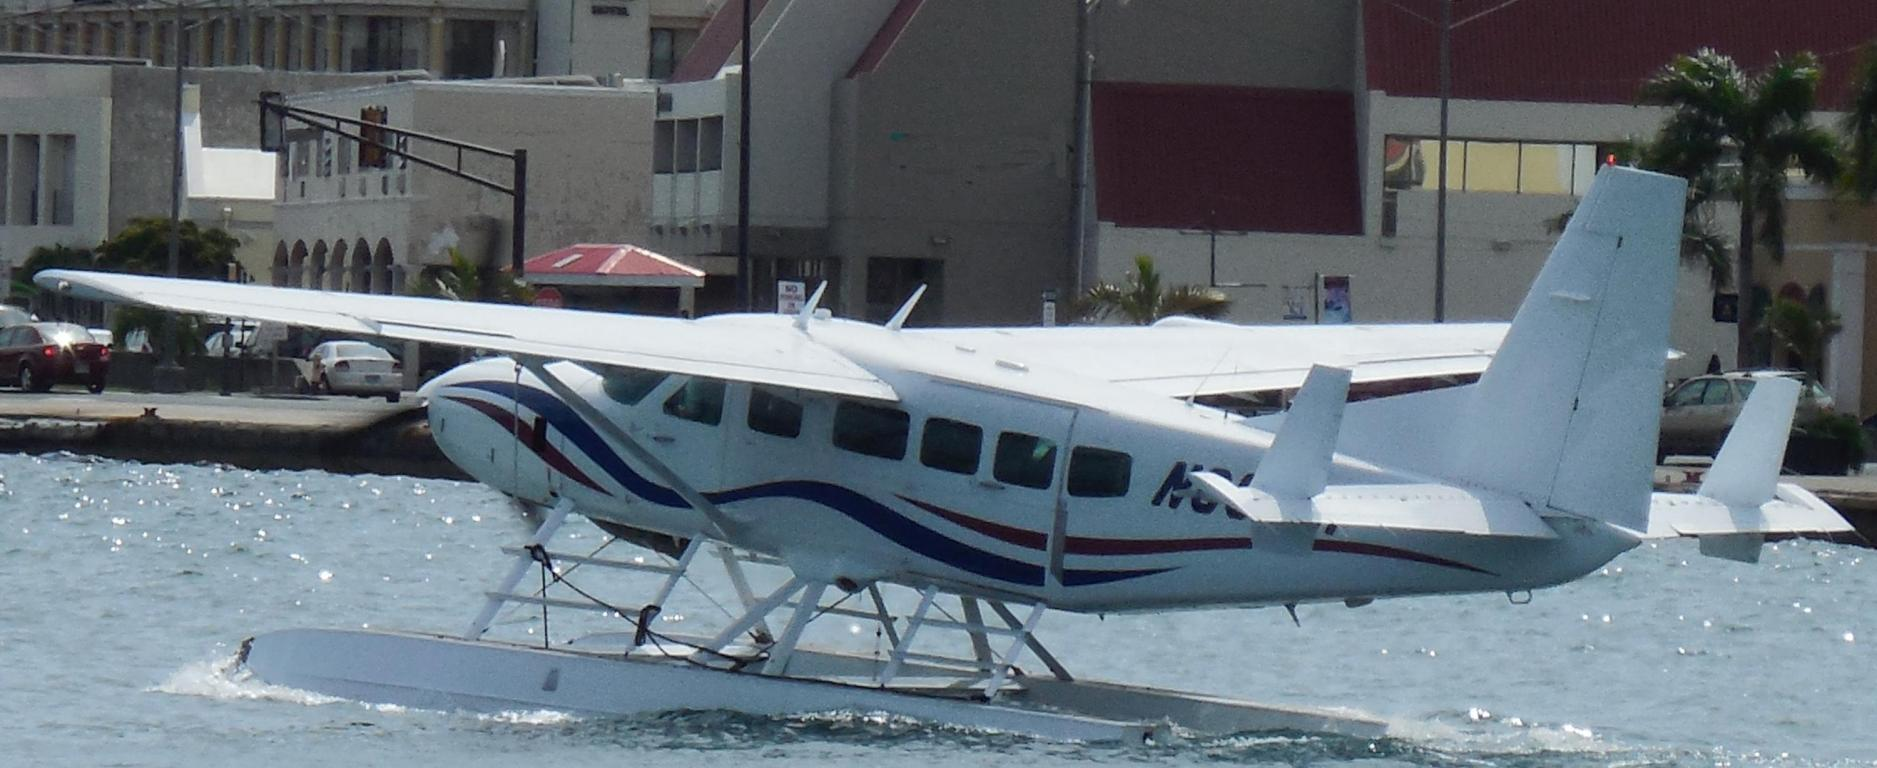 watch the sea planes land